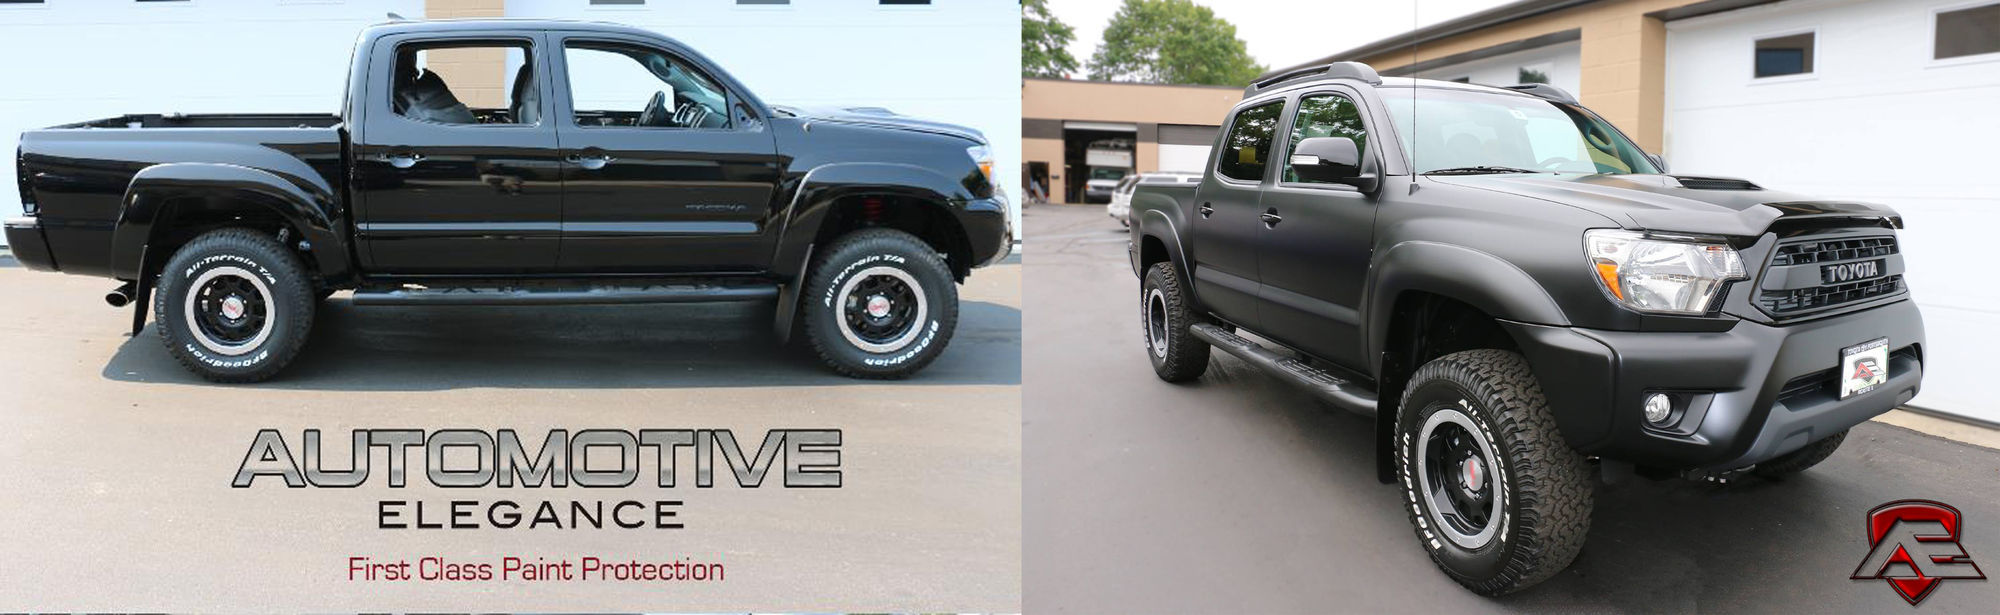 2015 Toyota Tacoma | Toyota Tacoma TRD fully wrapped with XPEL STEALTH